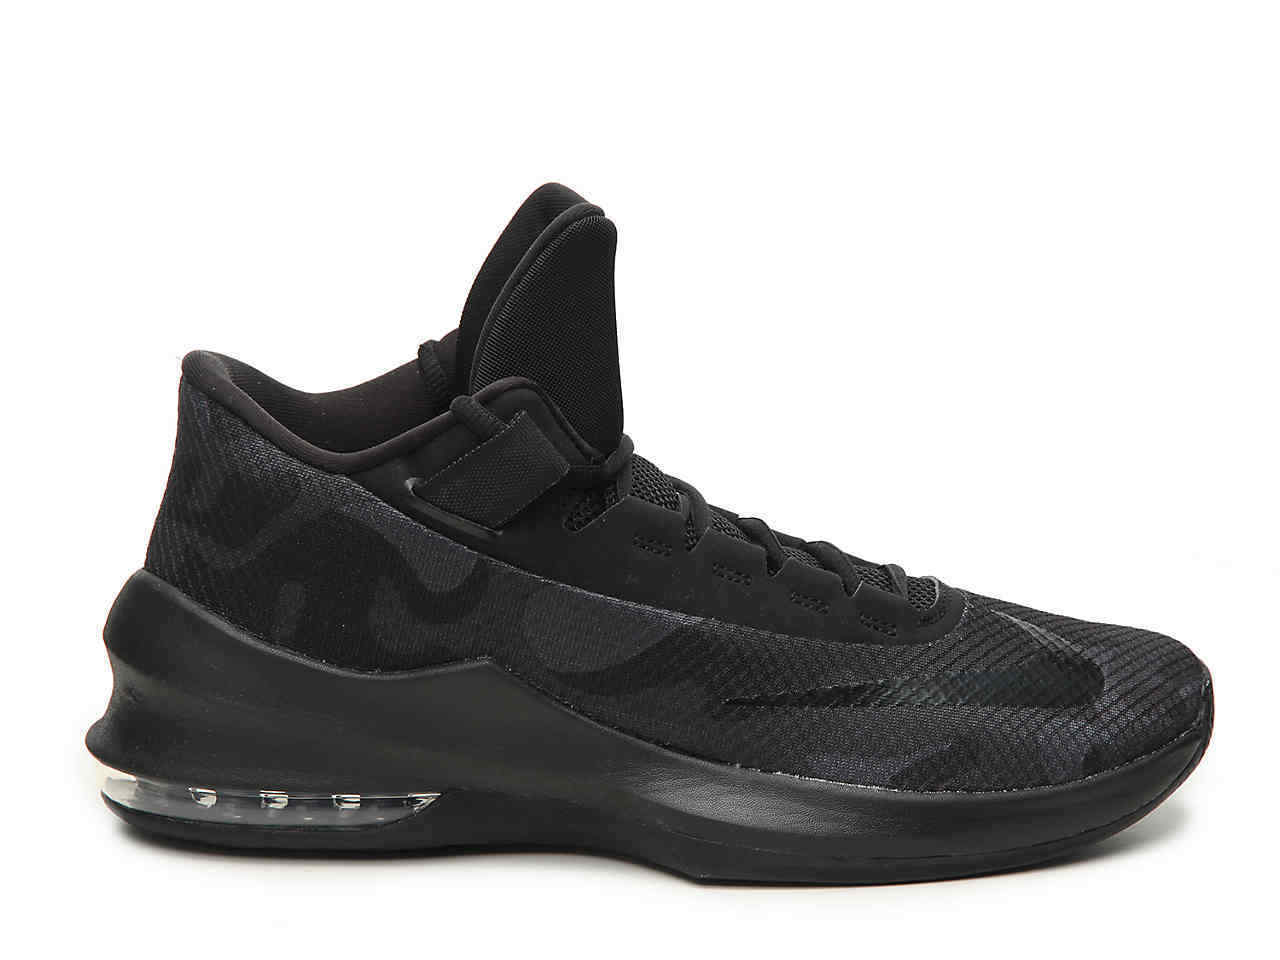 Mens Mens Mens Nike Air Max Infuriate 2 Mid PRM Basketball shoes Black Grey AO4428 001 c8d75f